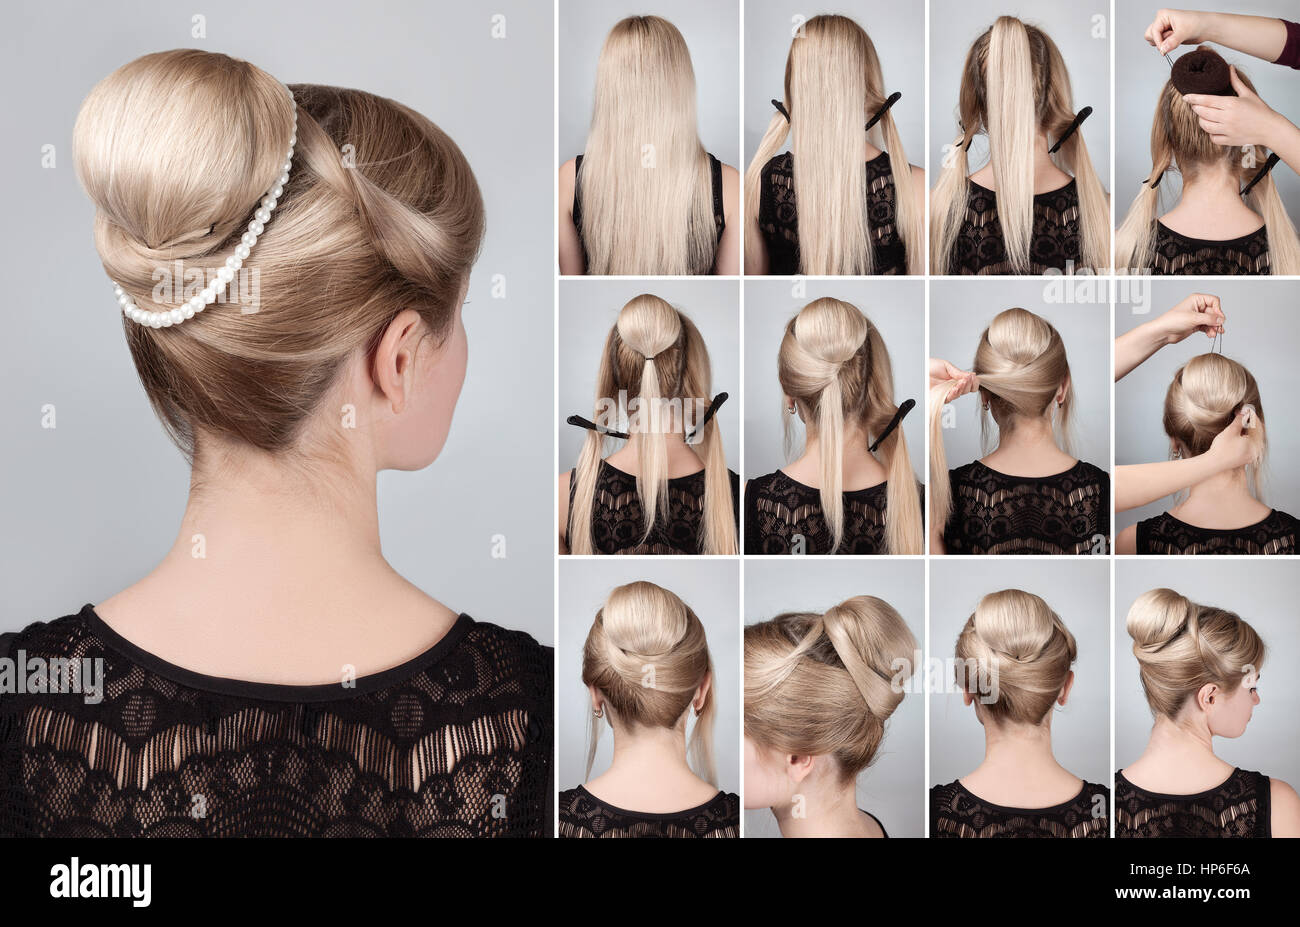 Hairstyle tutorial  elegant bun with chignon and string of pearls. Woman blonde with retro hairdo bun - Stock Image